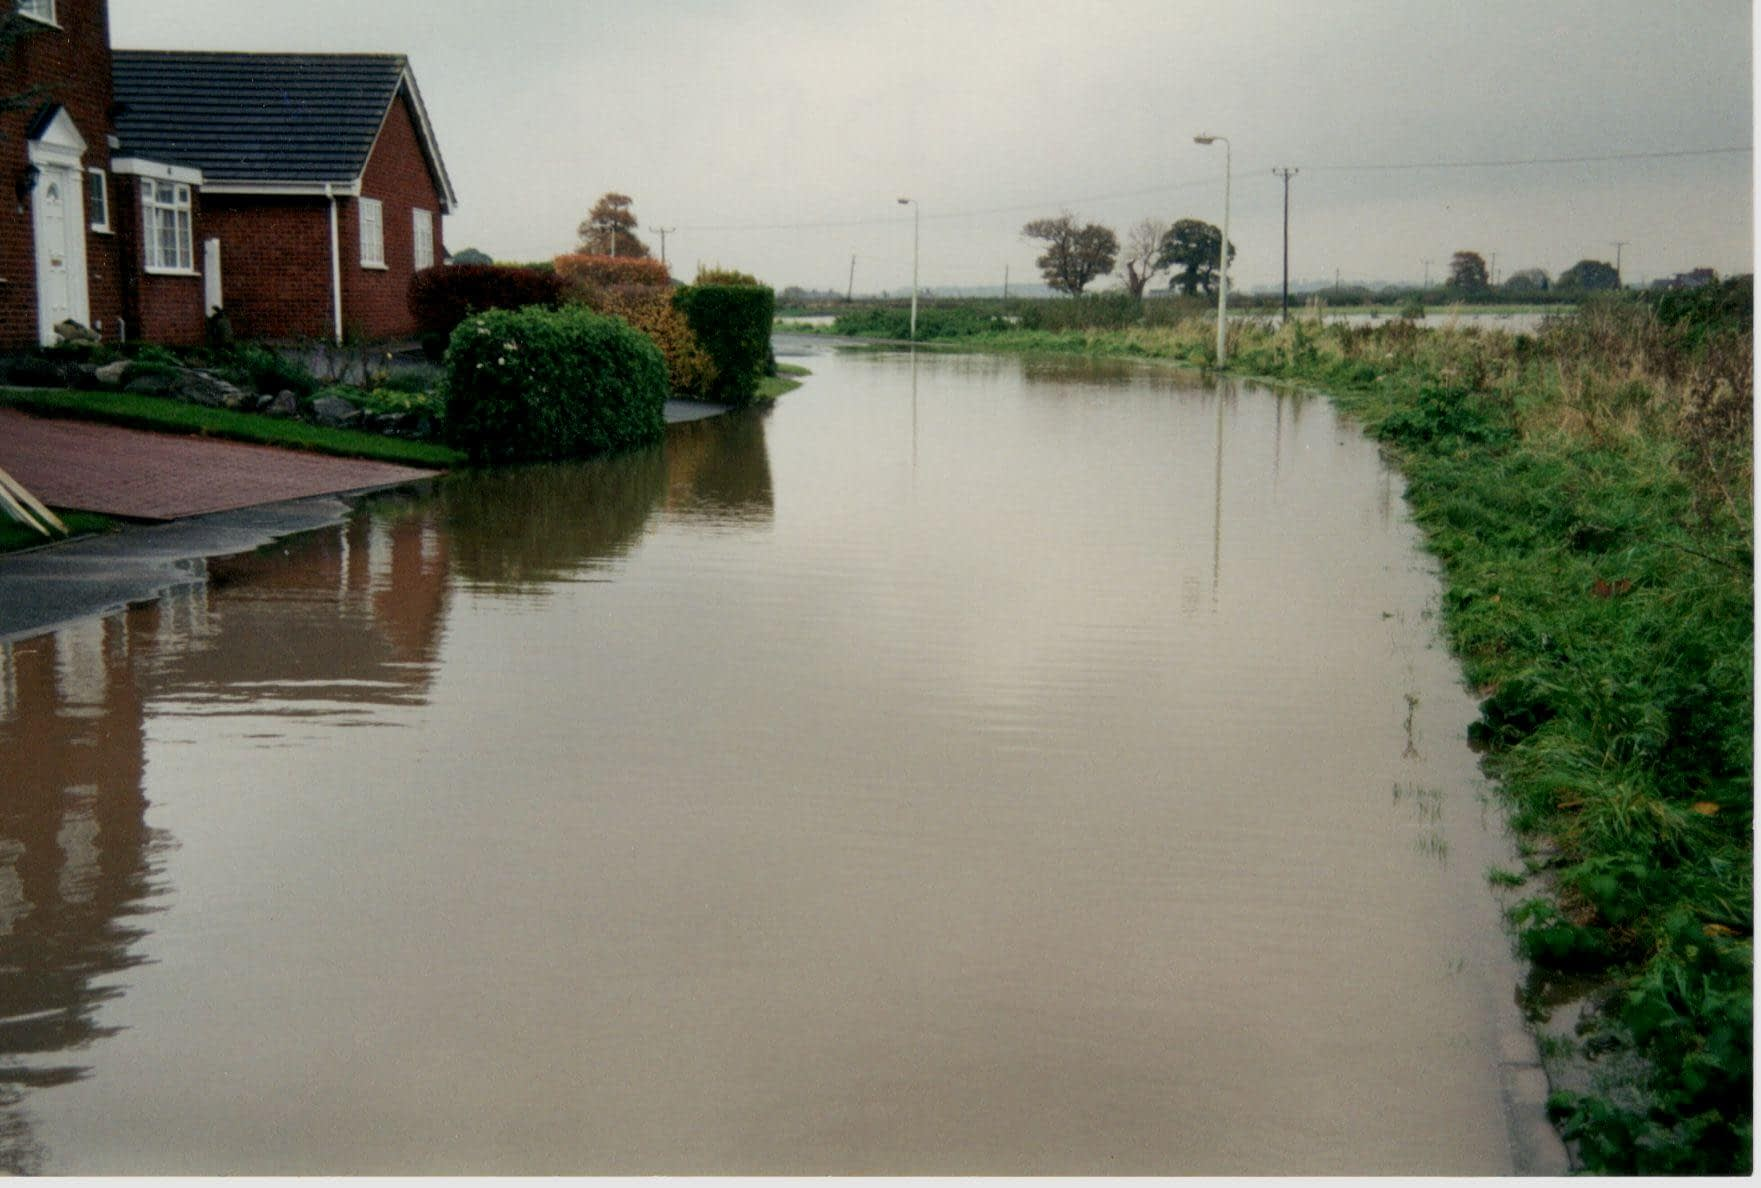 Flooding in 2000